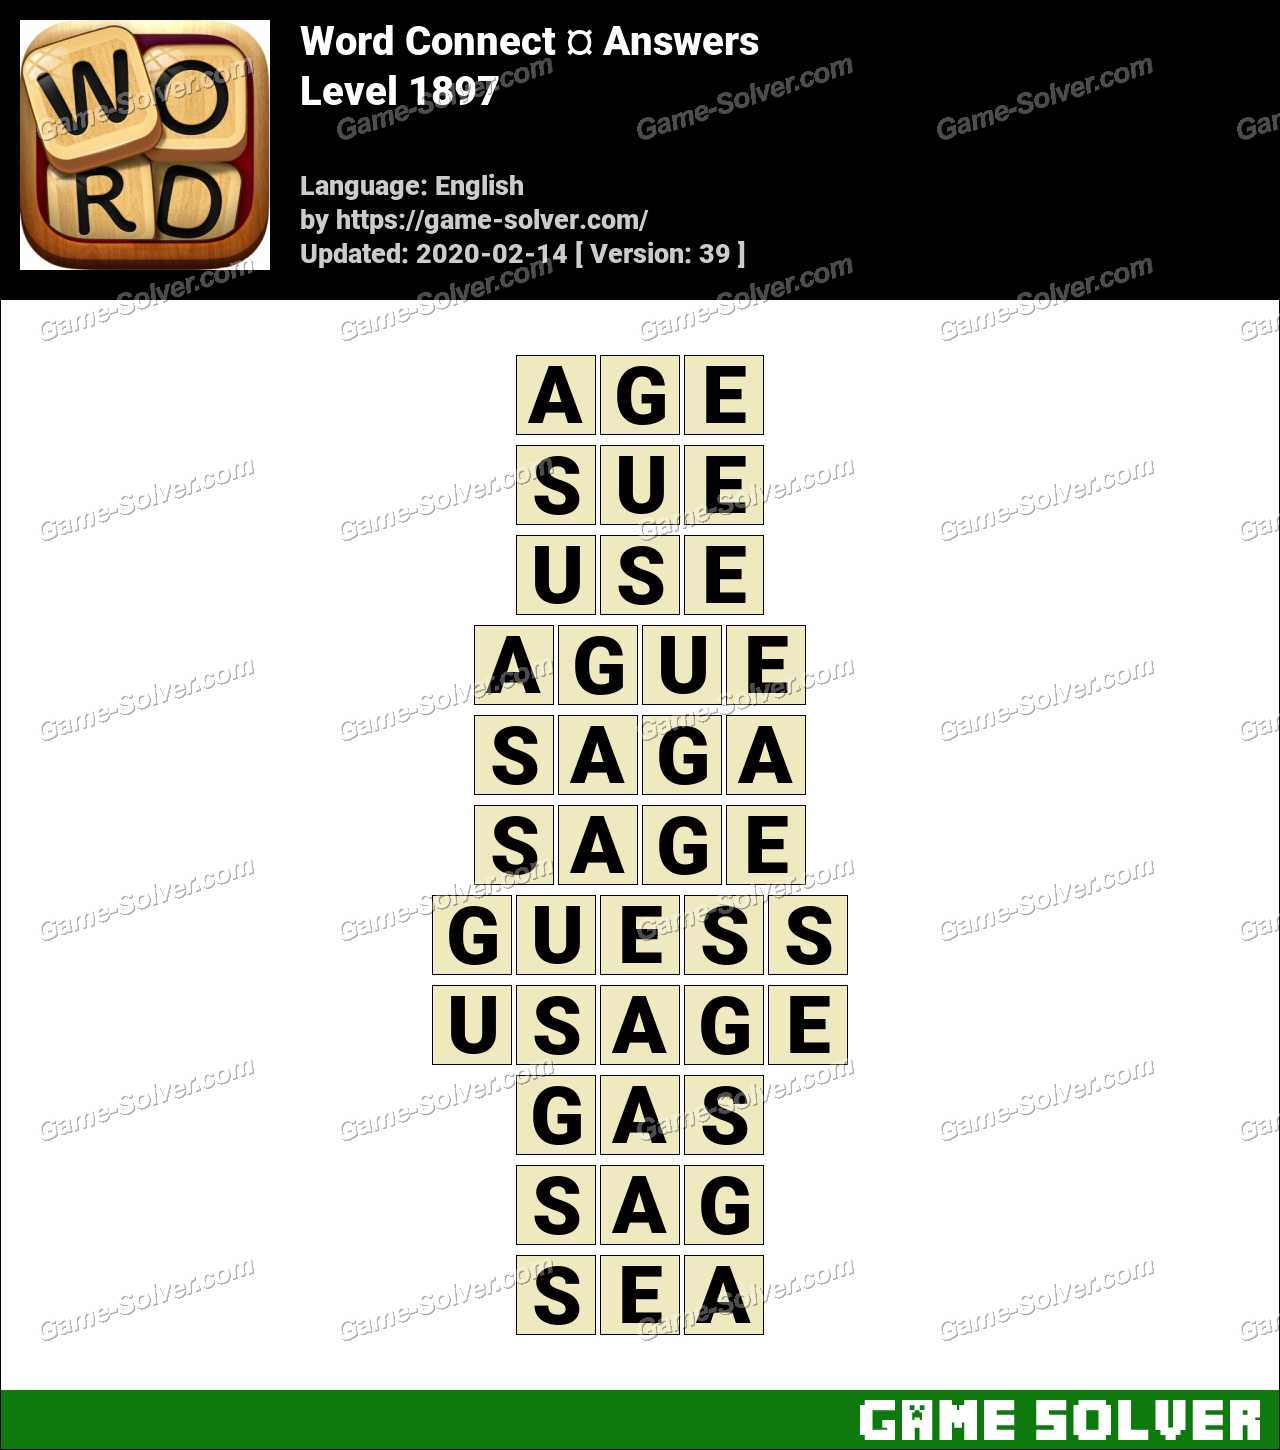 Word Connect Level 1897 Answers